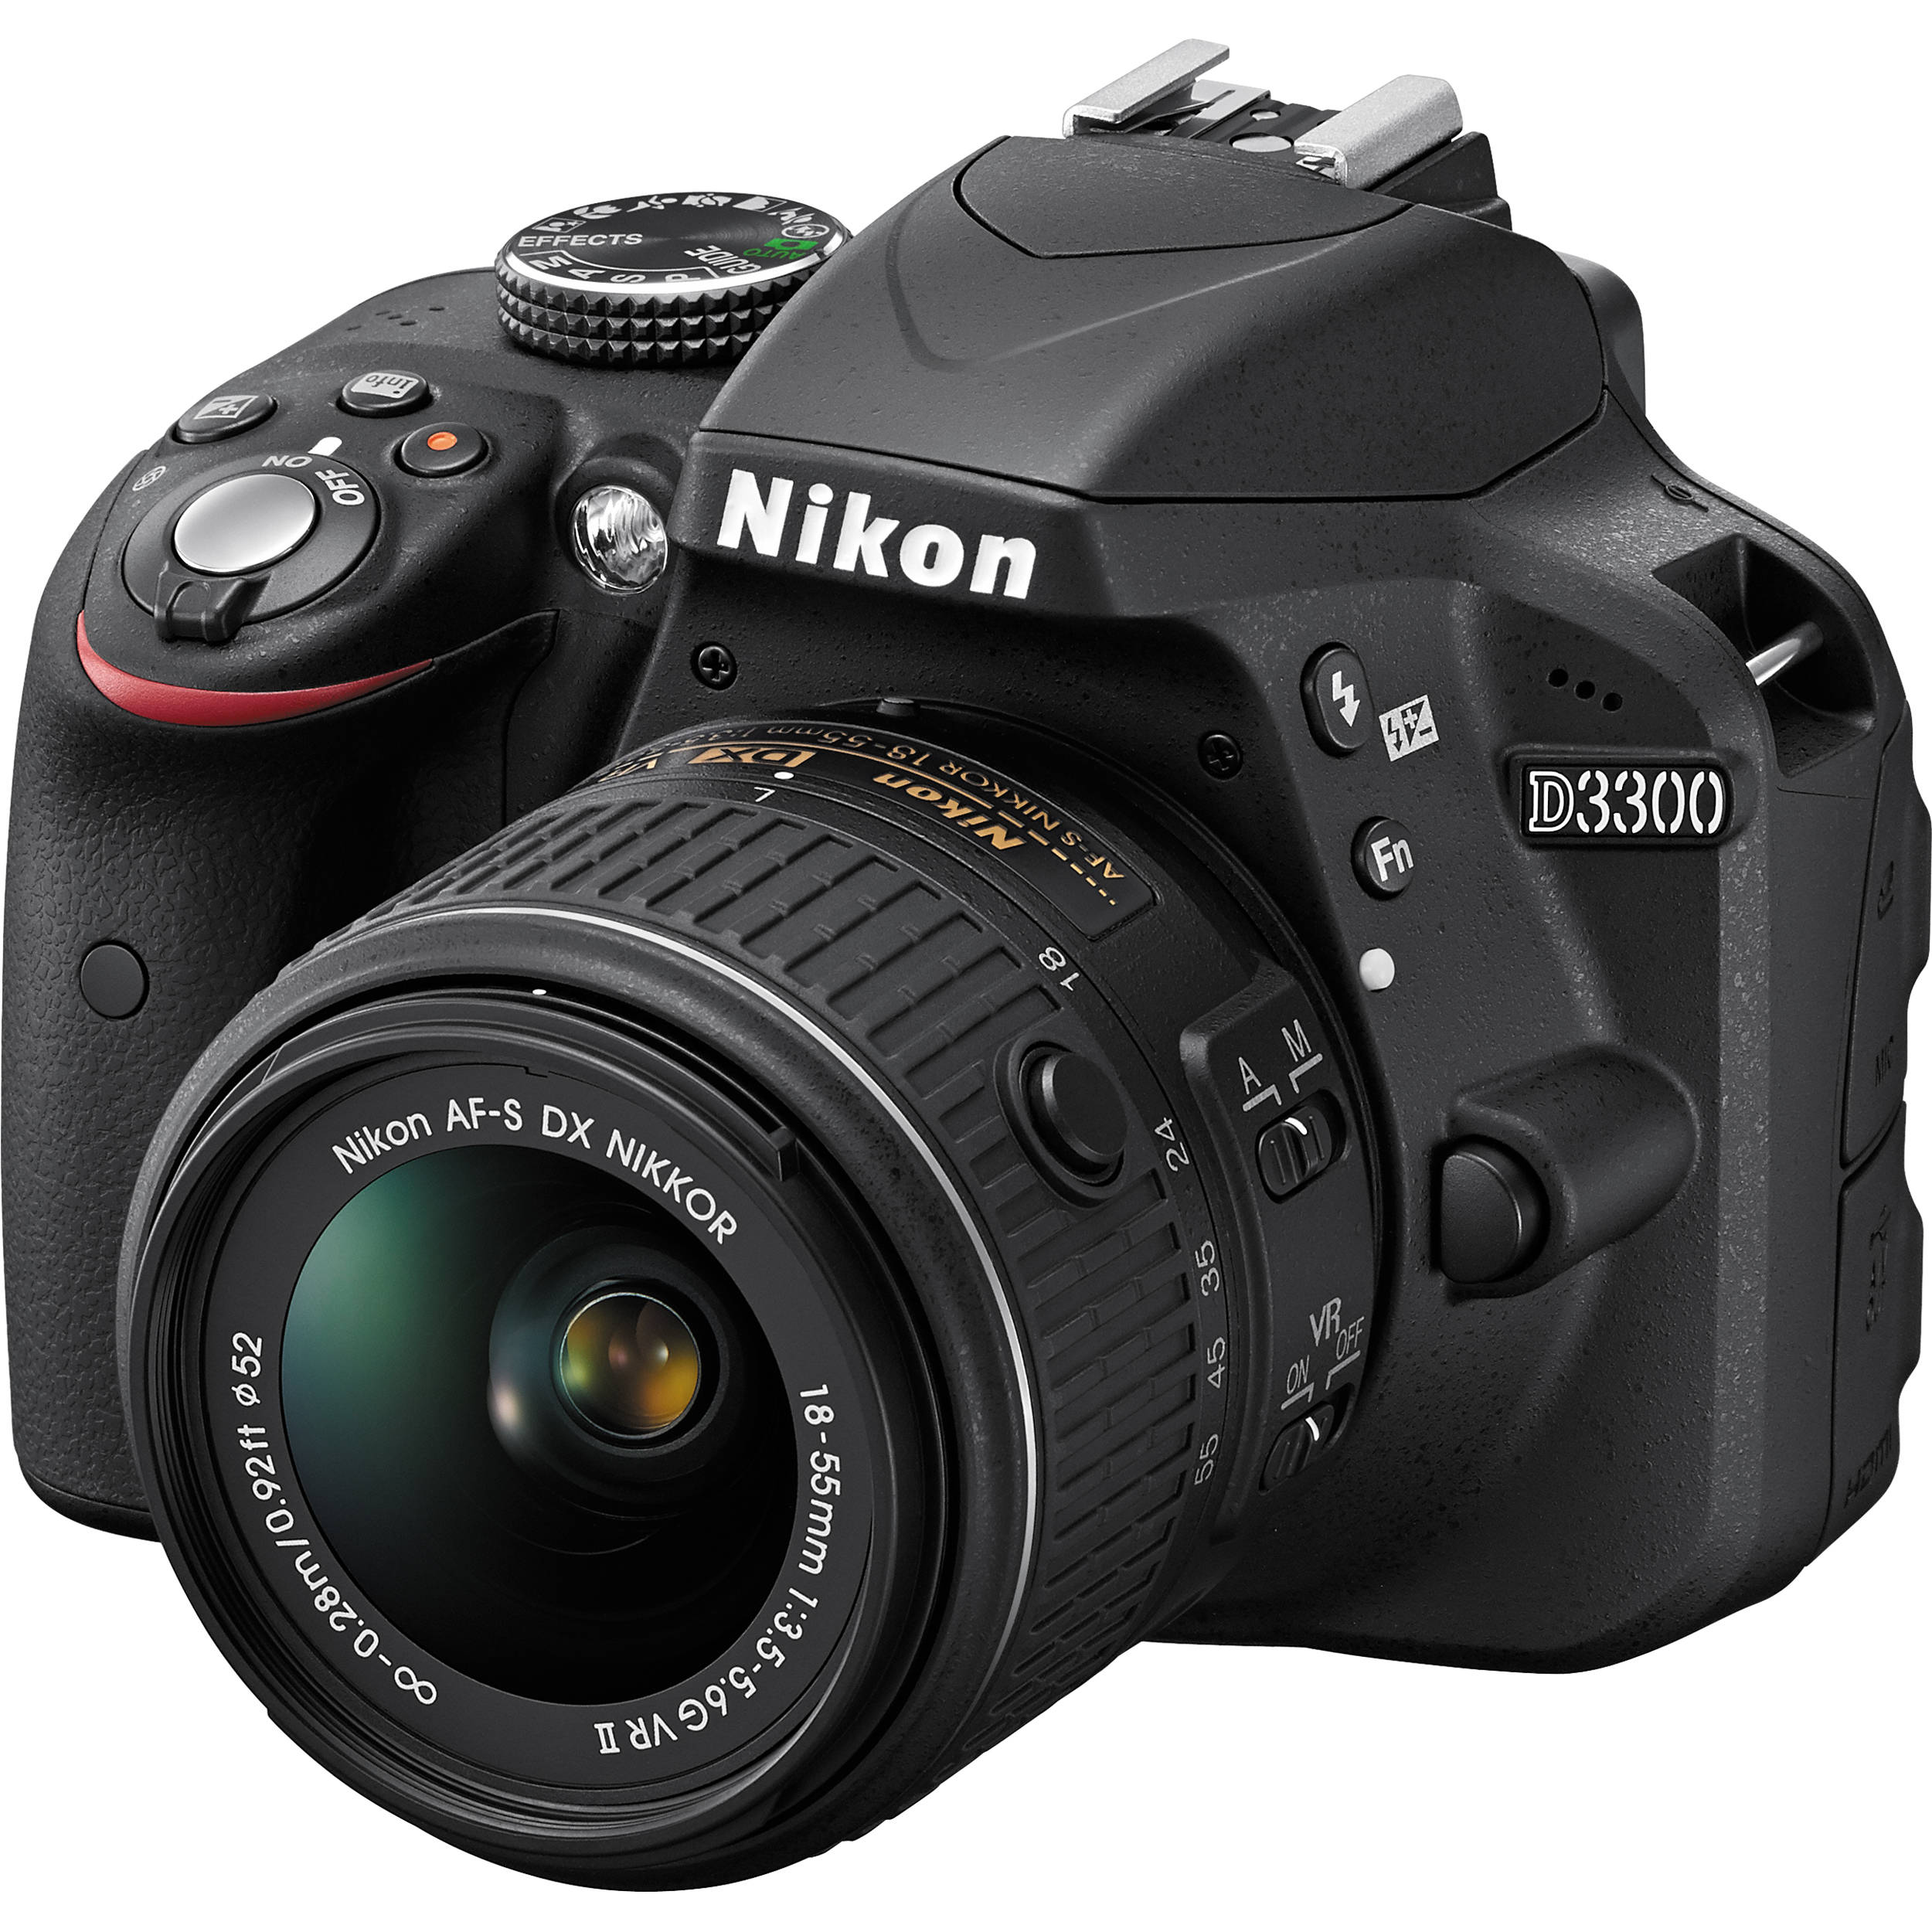 Nikon D3300 DSLR Camera with 1855mm Lens Black 1532 Bamp;H Photo